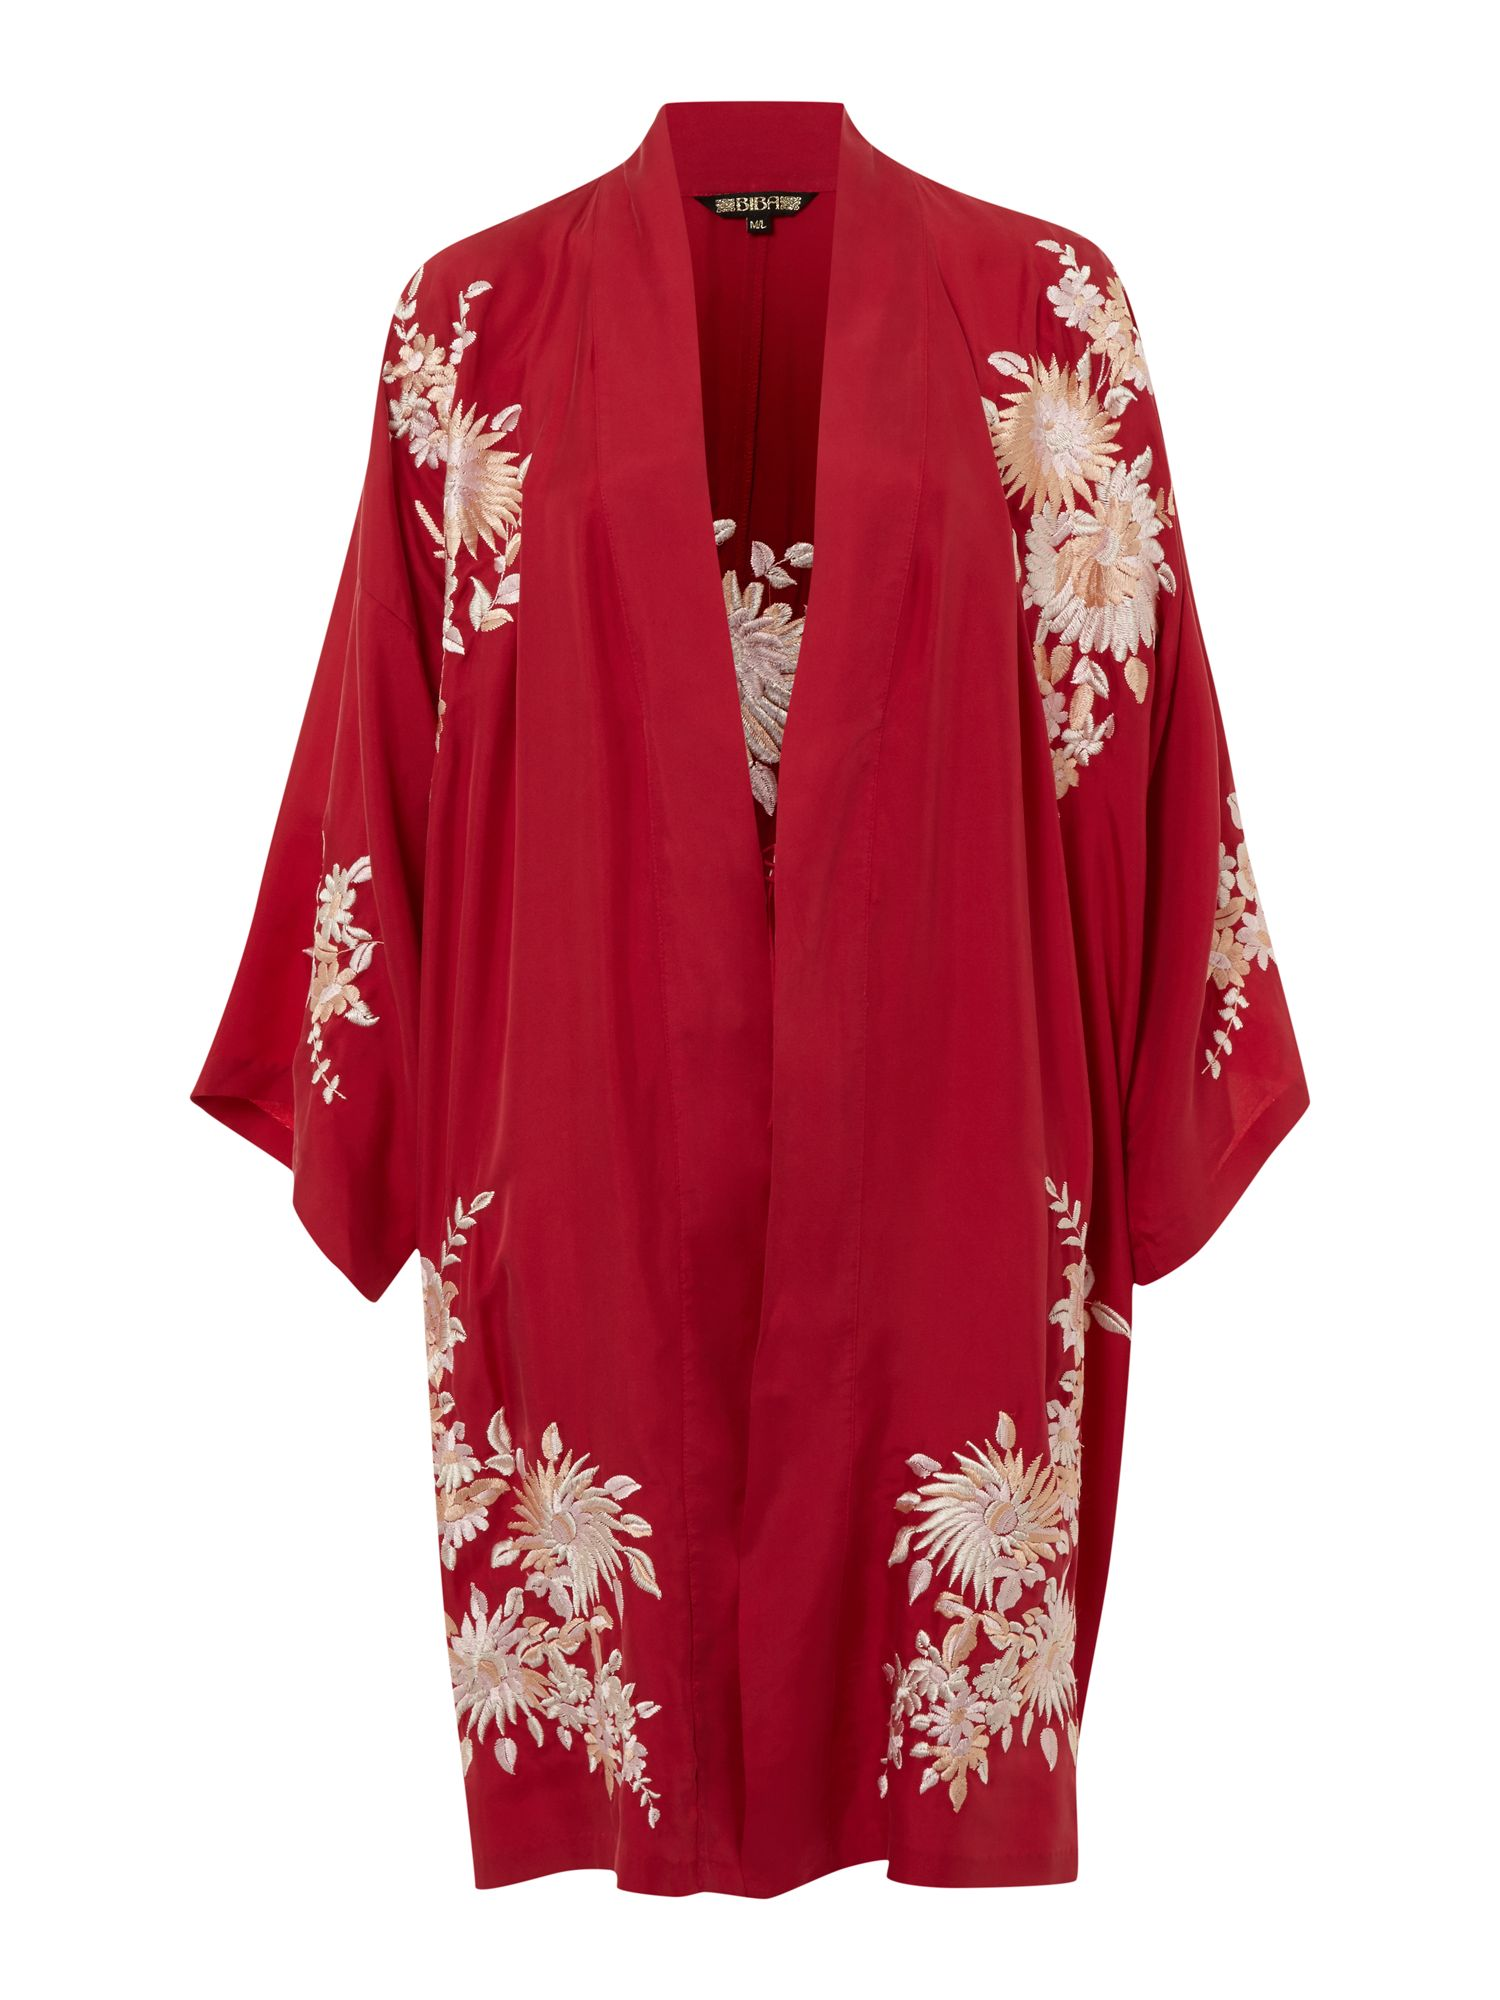 Embroidered vintage robe